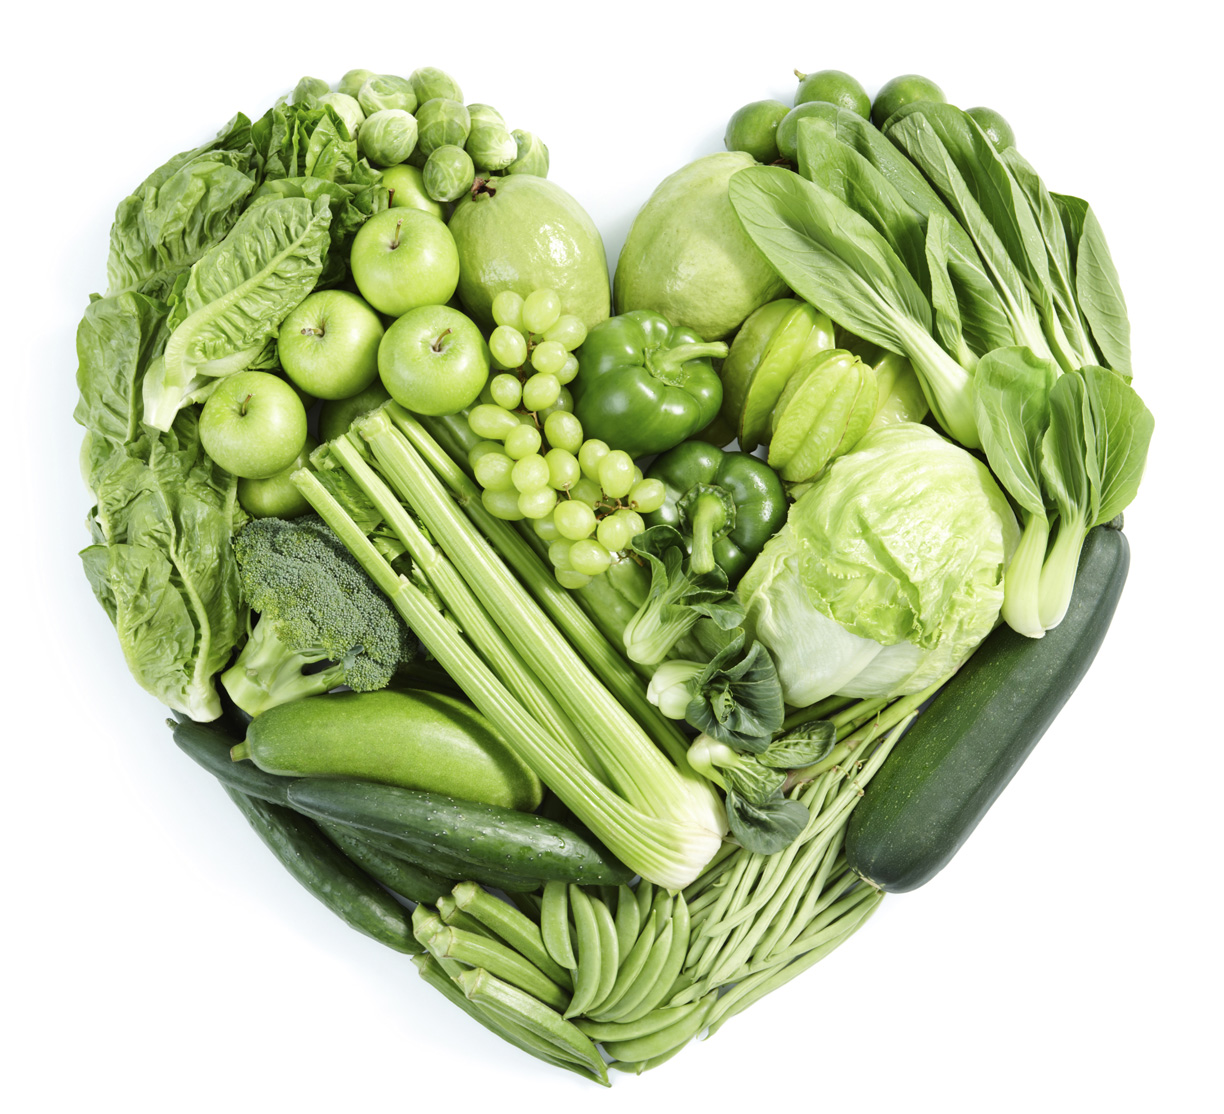 636096152359373428greenvegetables.jpg